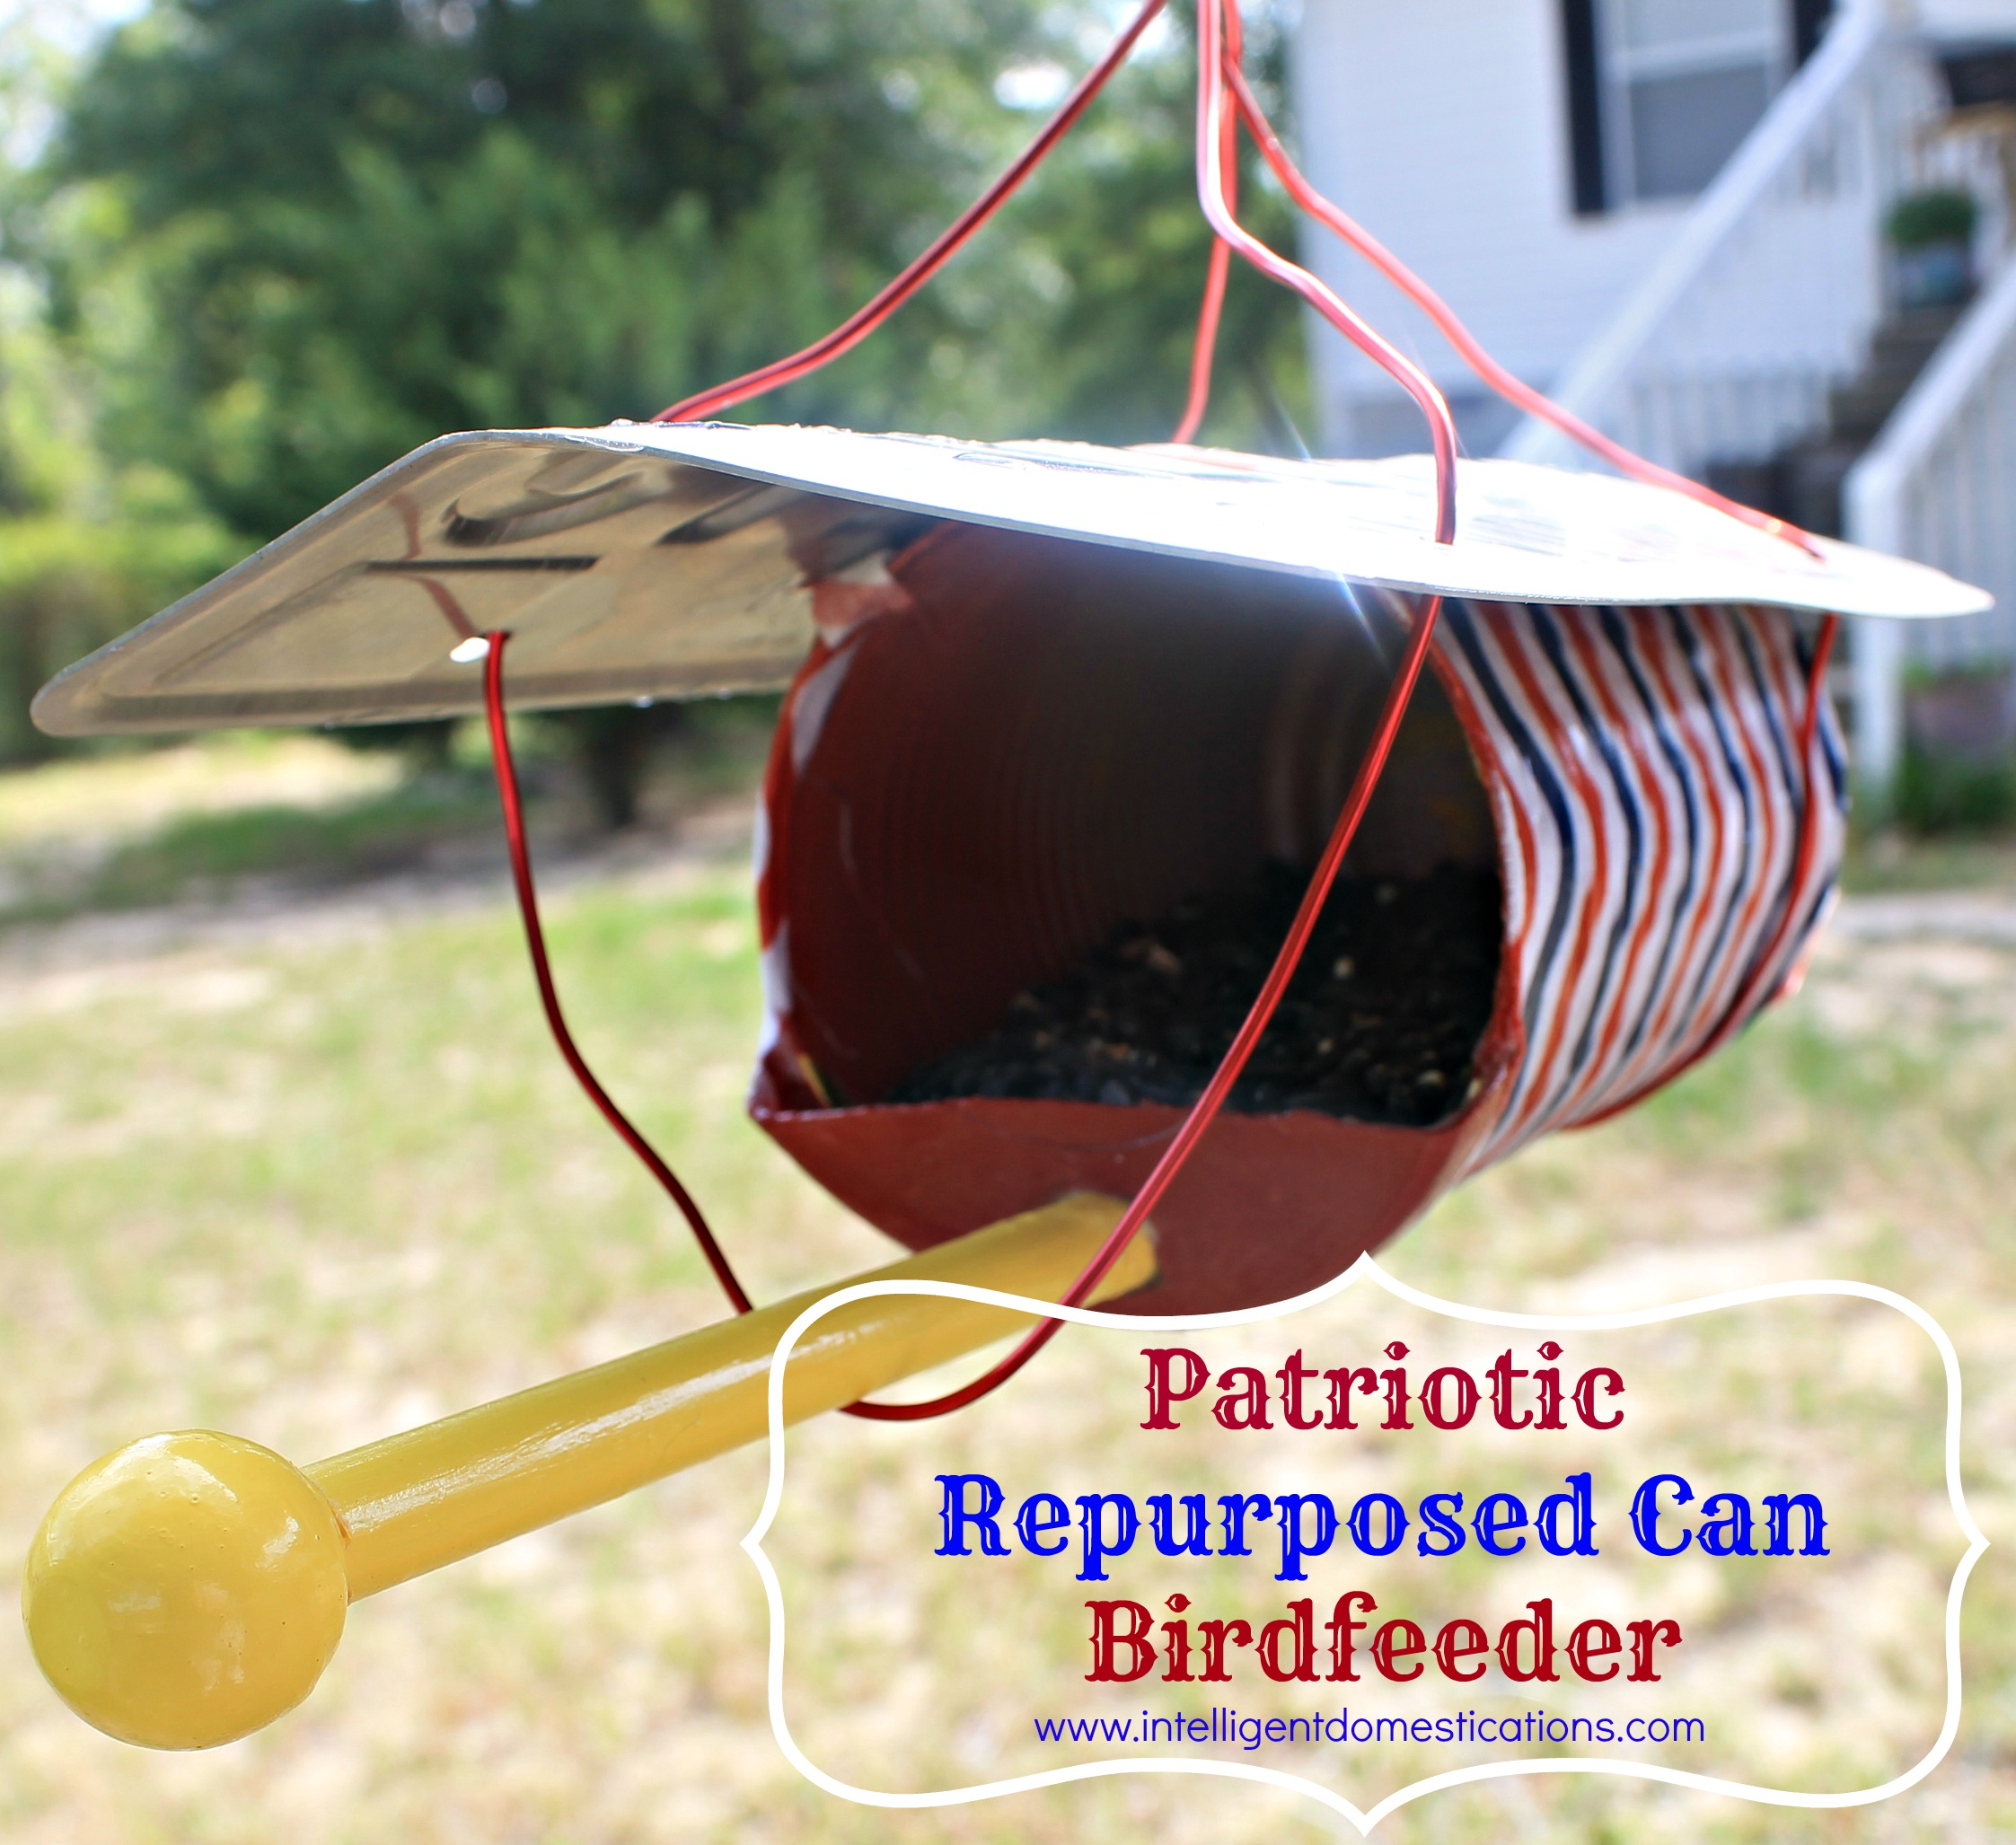 Patriotic Repurposed Can Birdfeeder